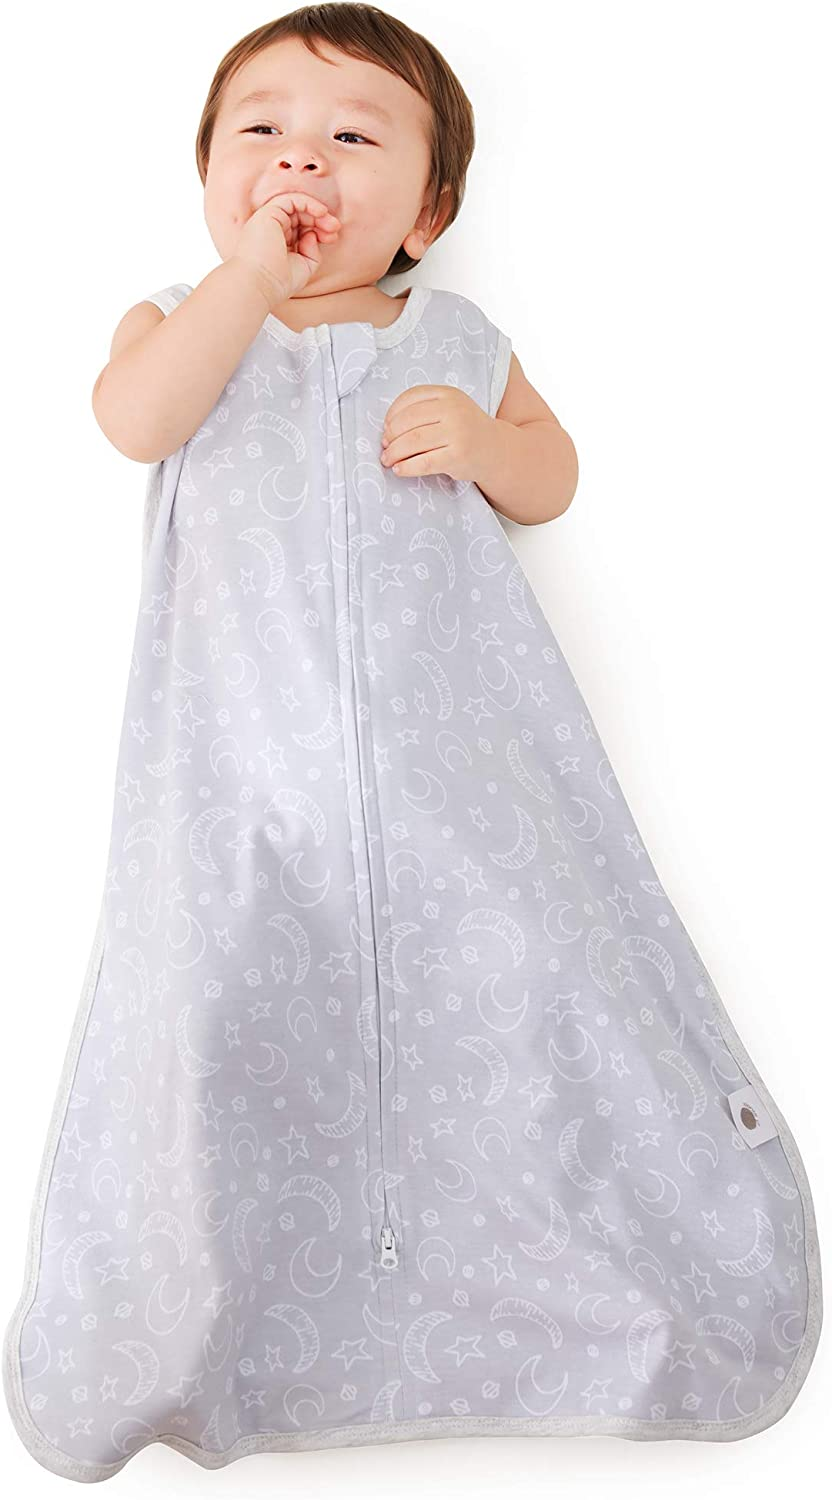 MioRico Organic Cotton Reservation Baby Sleep 12-18 National products 2-Way Months Zippe Sack